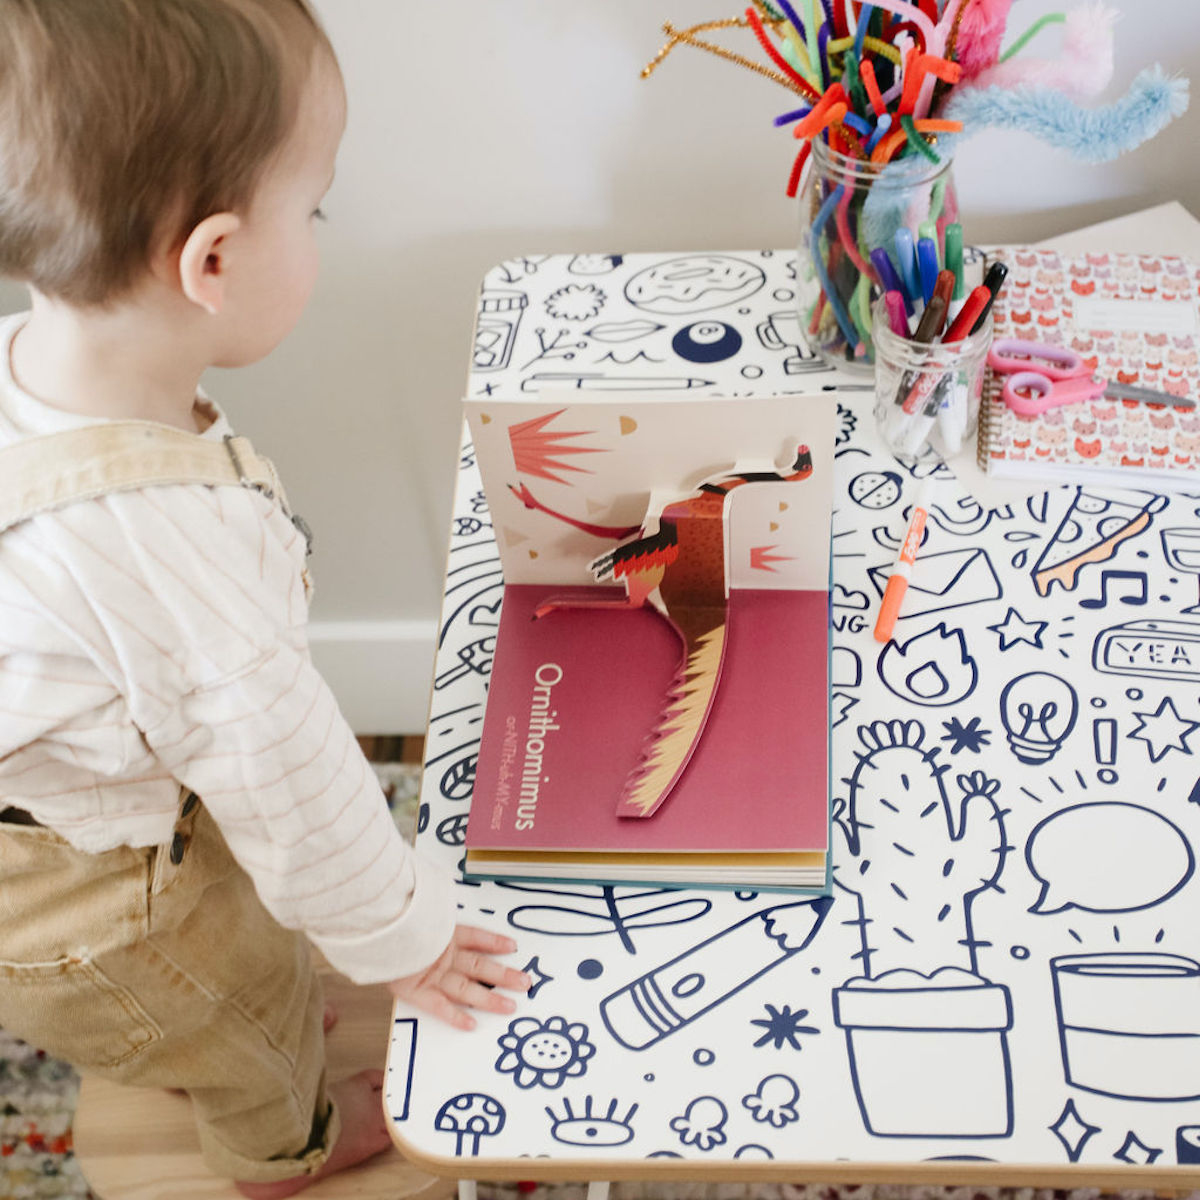 A little boy reading a book on a Chassie brand table